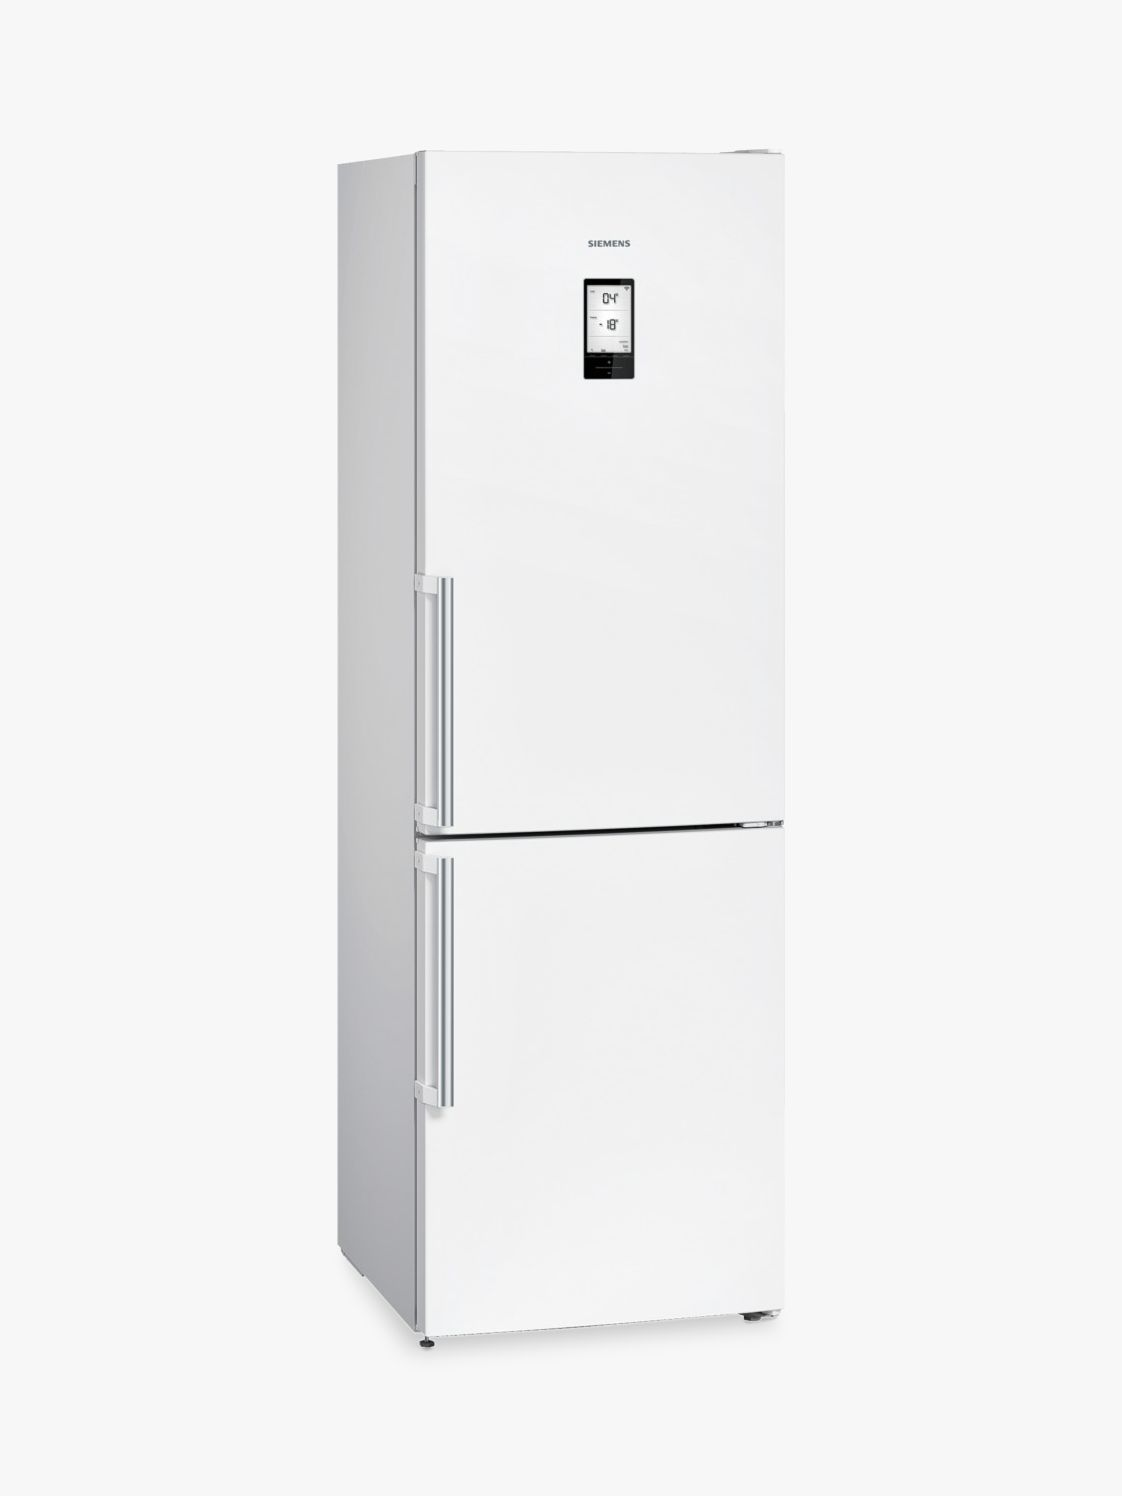 Siemens Siemens KG39NLB35 Freestanding Fridge Freezer with Home Connect, A++ Energy Rating, 60cm Wide, Black Glass